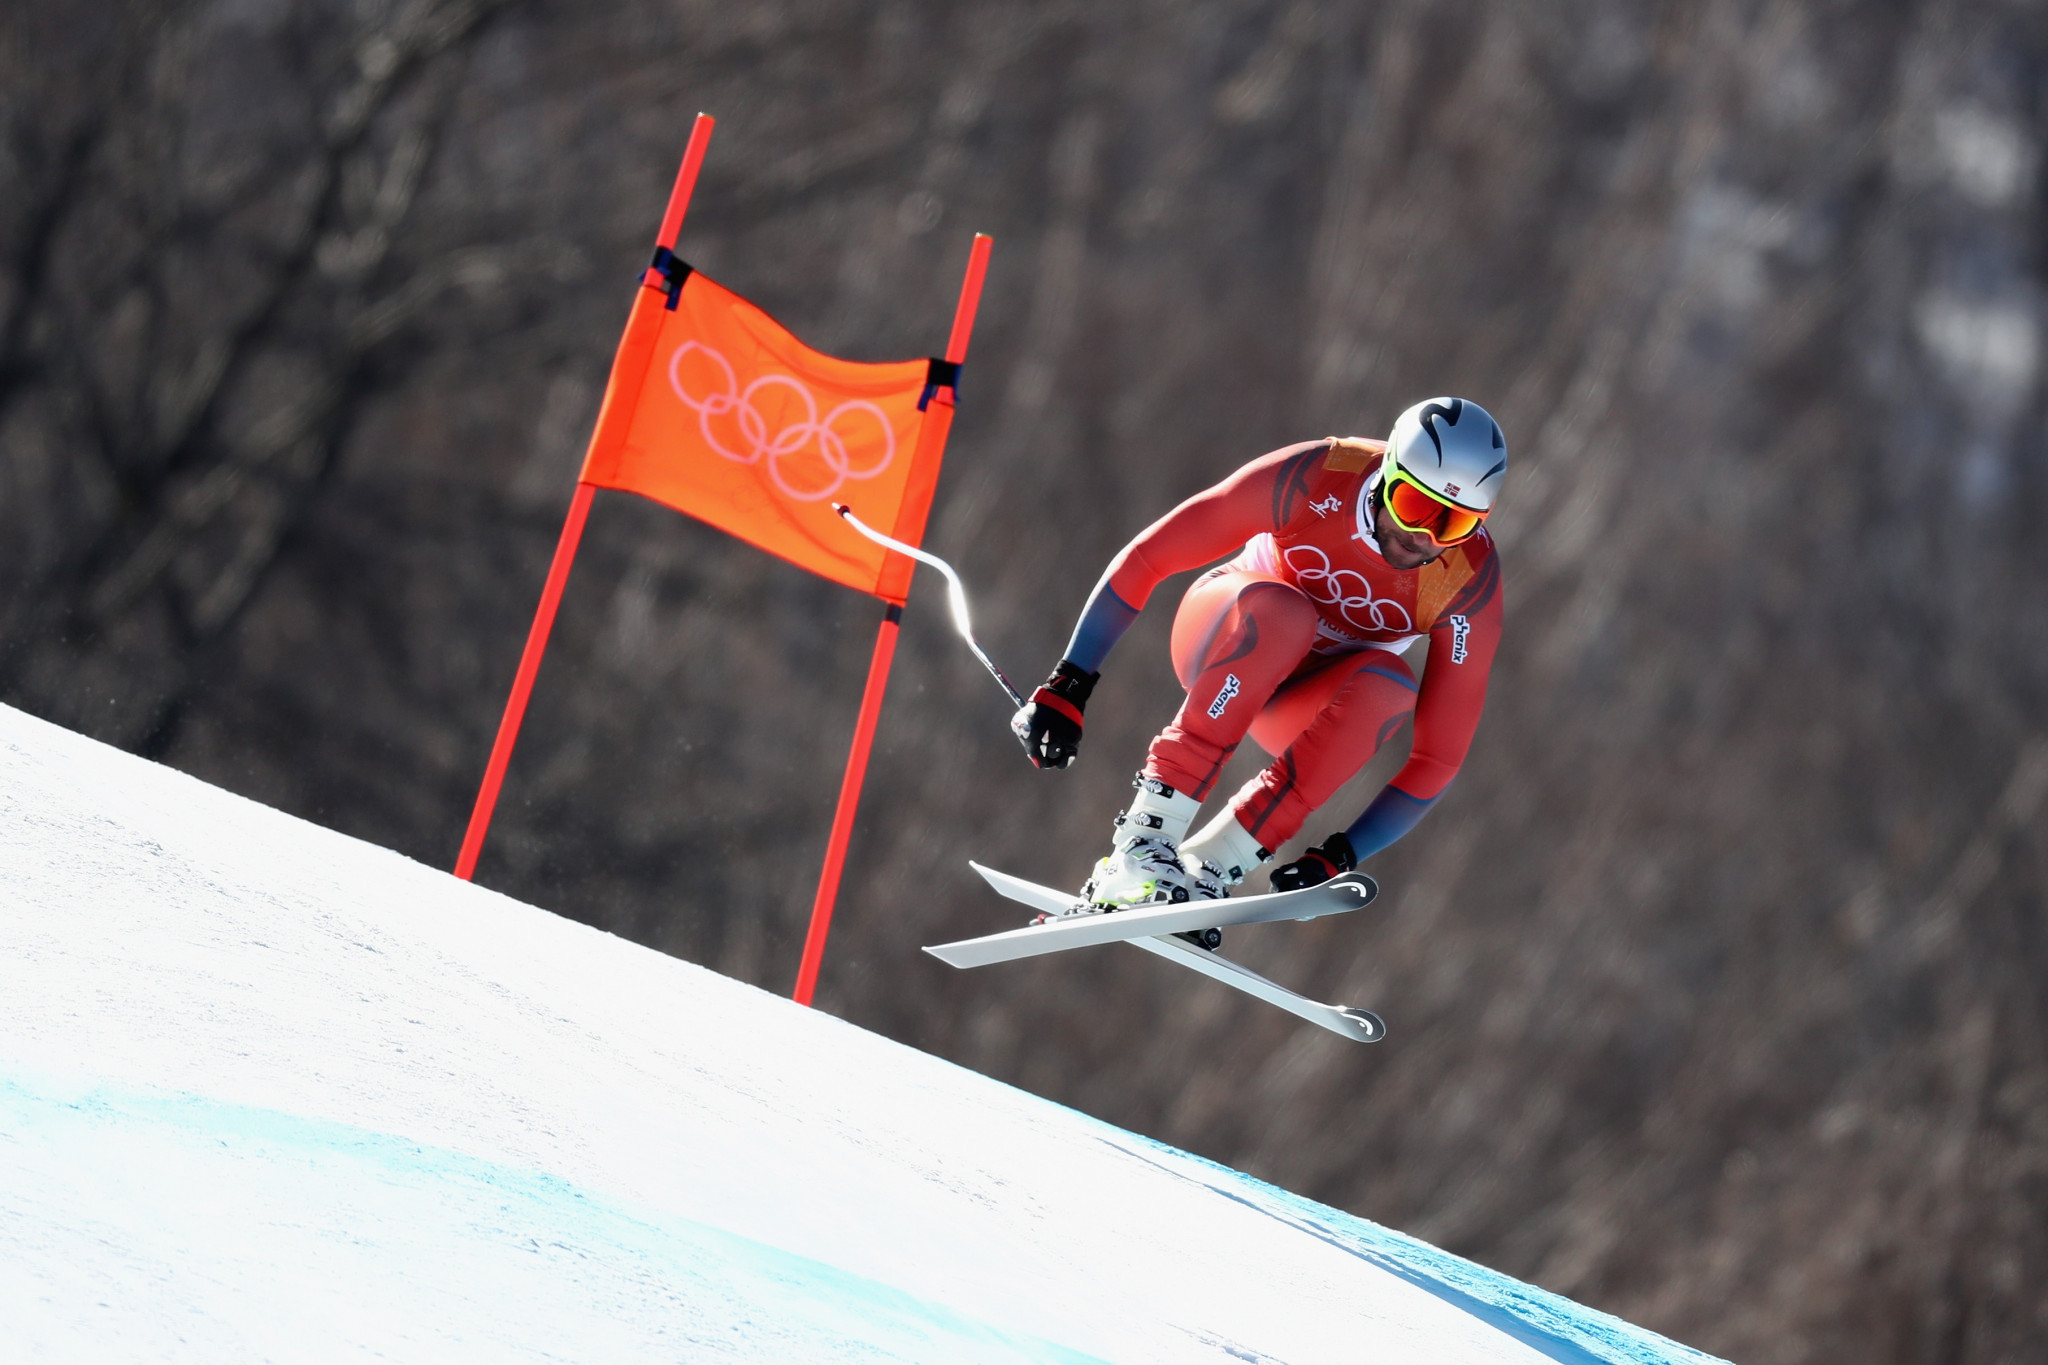 Svindal delivers display fit for royals to win Olympic men's downhill title at Pyeongchang 2018